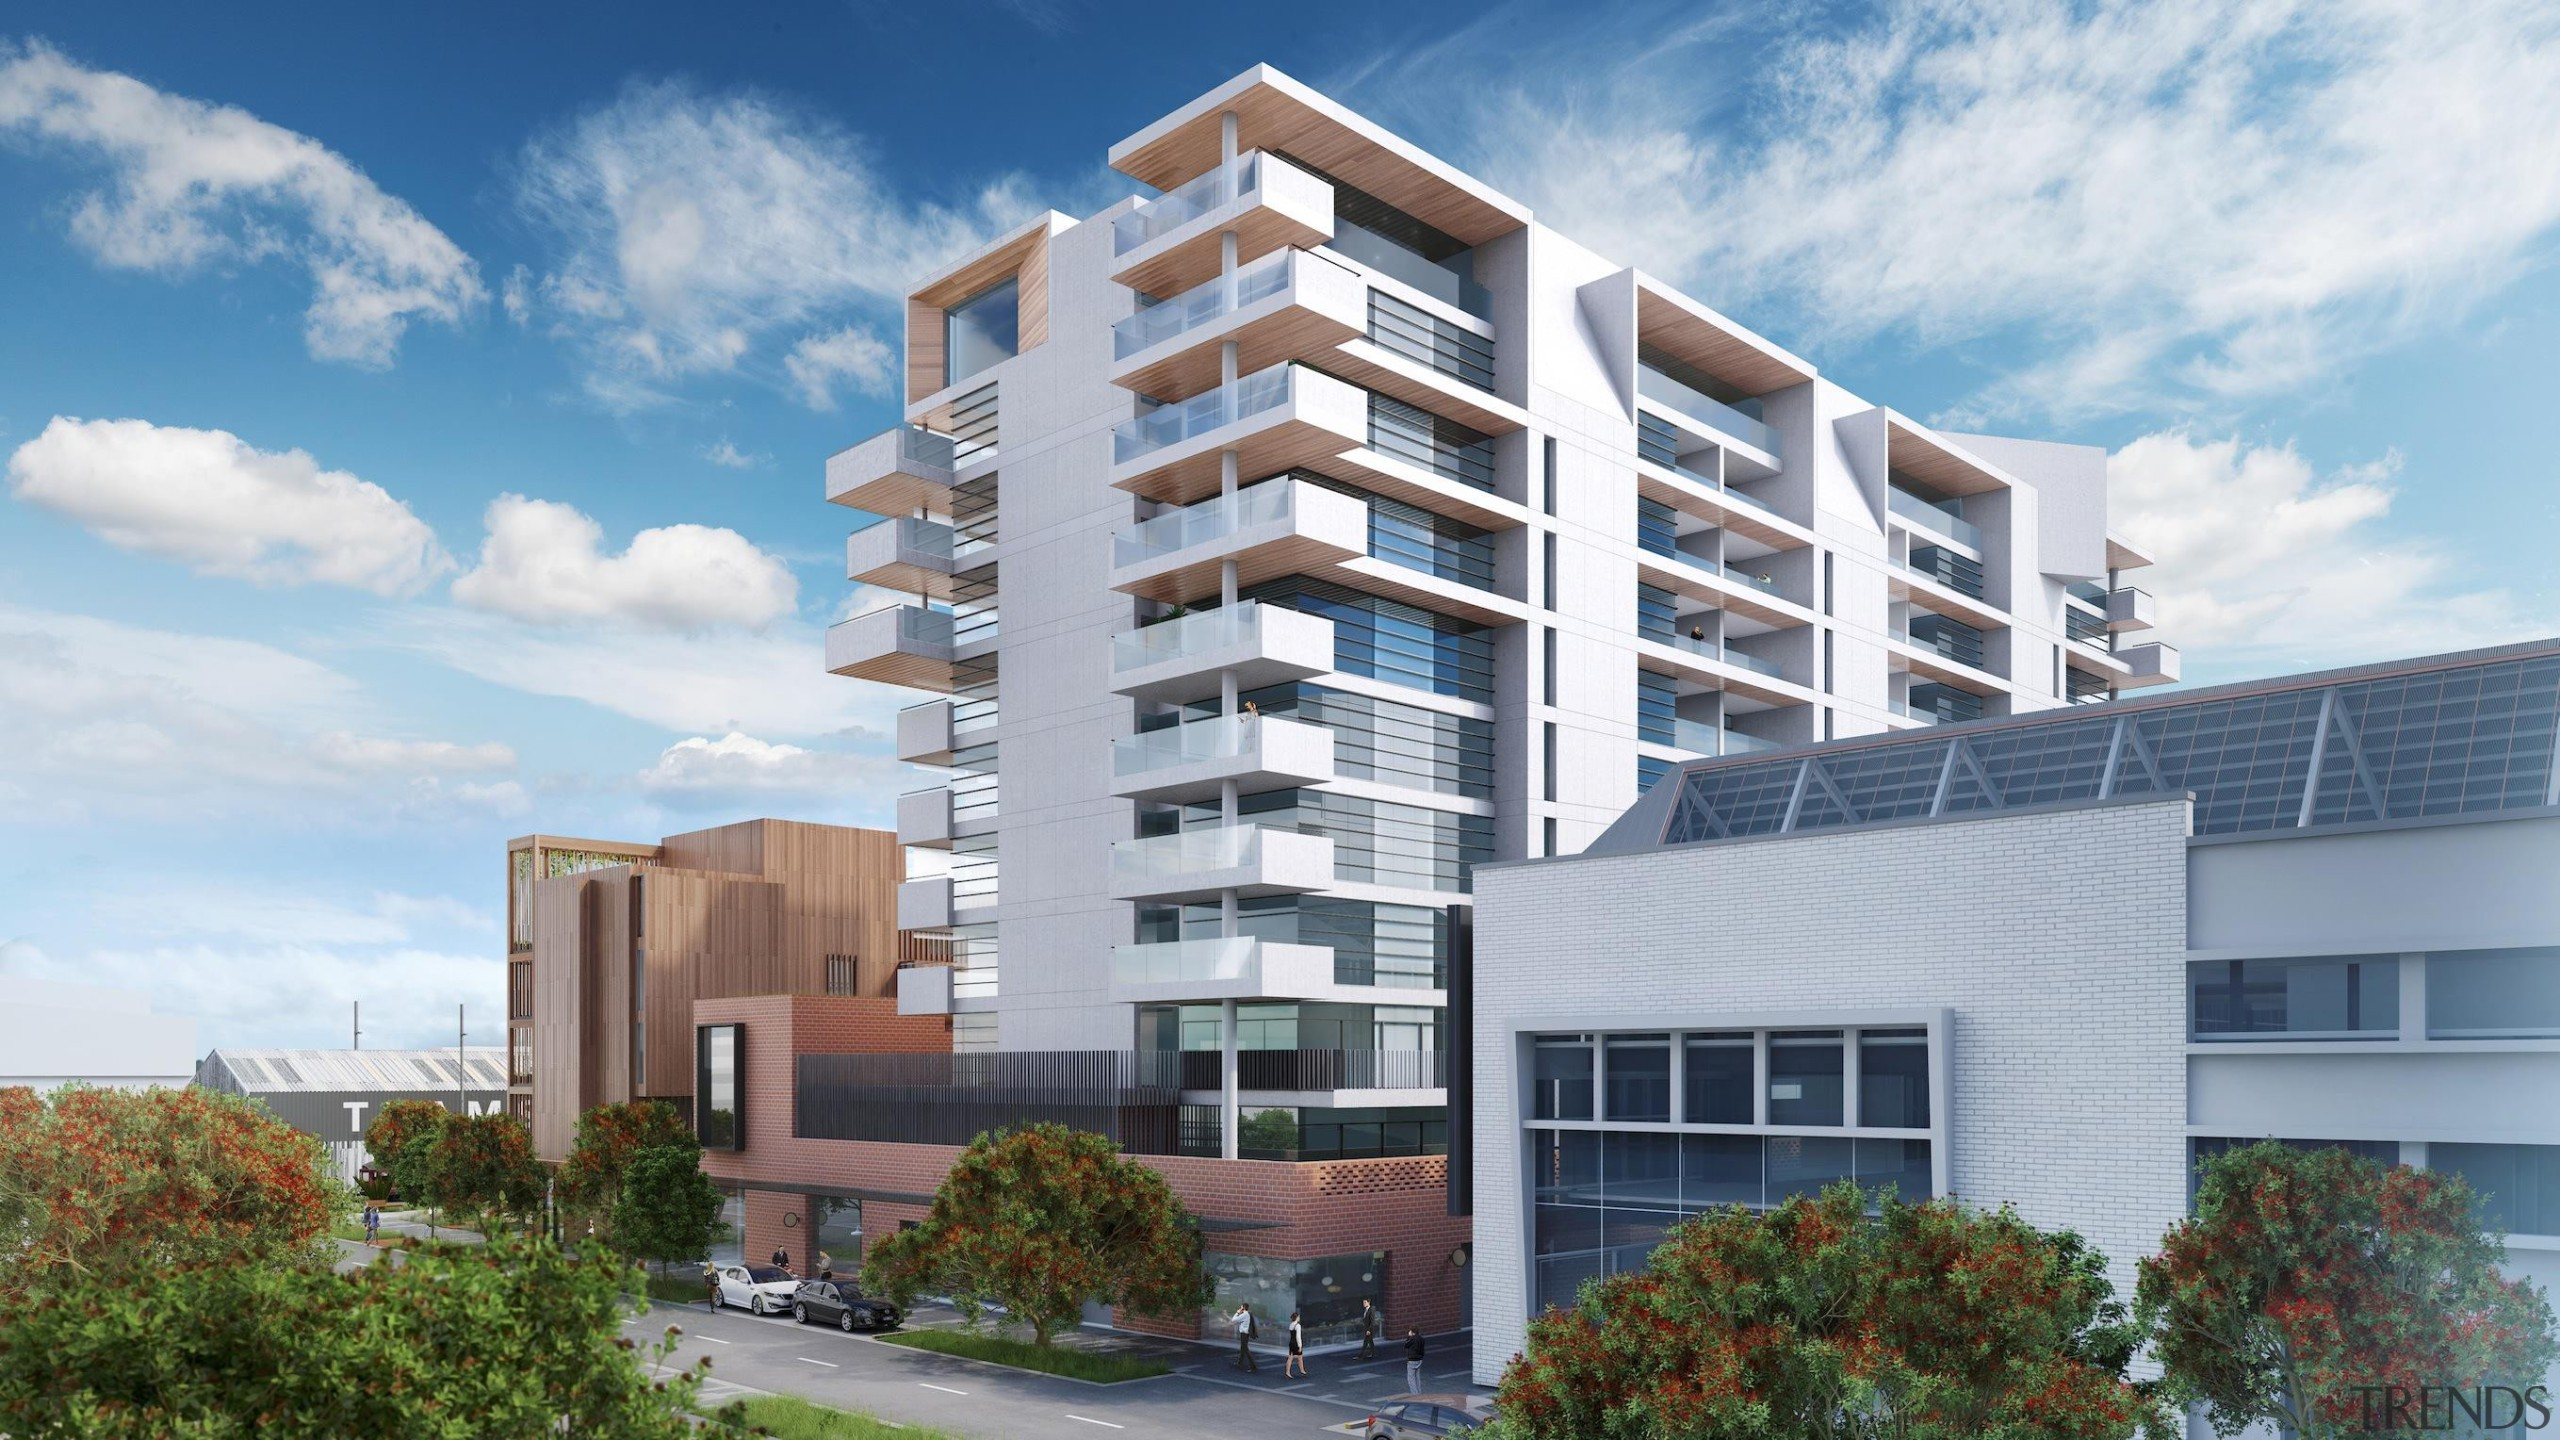 The first stage of Wynyard Central is an apartment, building, commercial building, condominium, corporate headquarters, elevation, estate, facade, home, house, metropolitan area, mixed use, neighbourhood, property, real estate, residential area, tower block, gray